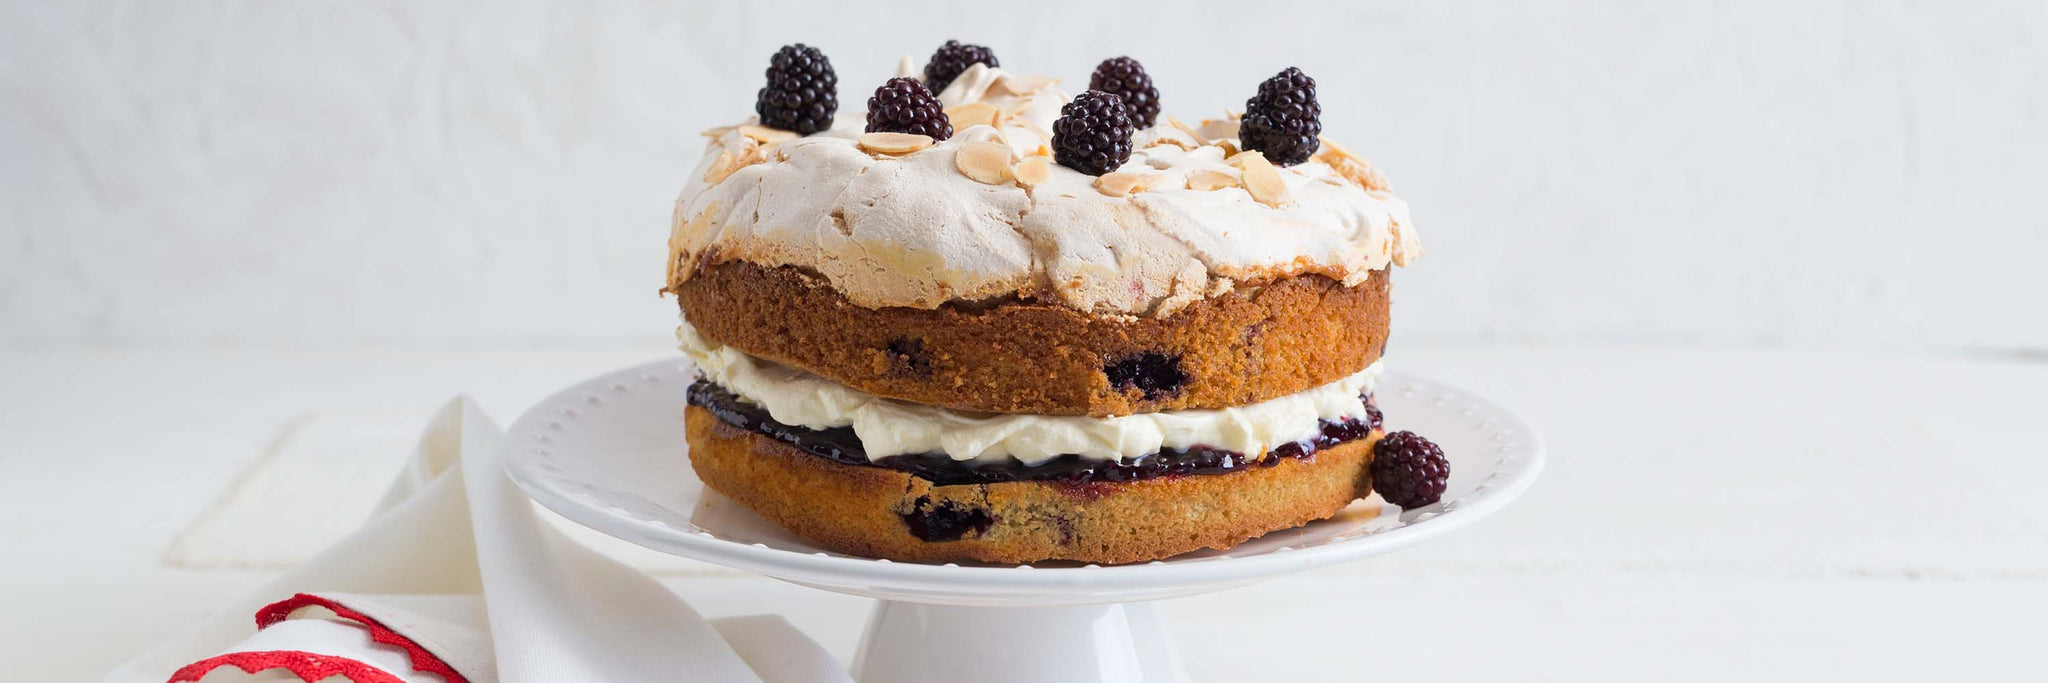 Blackberry Meringue Cake